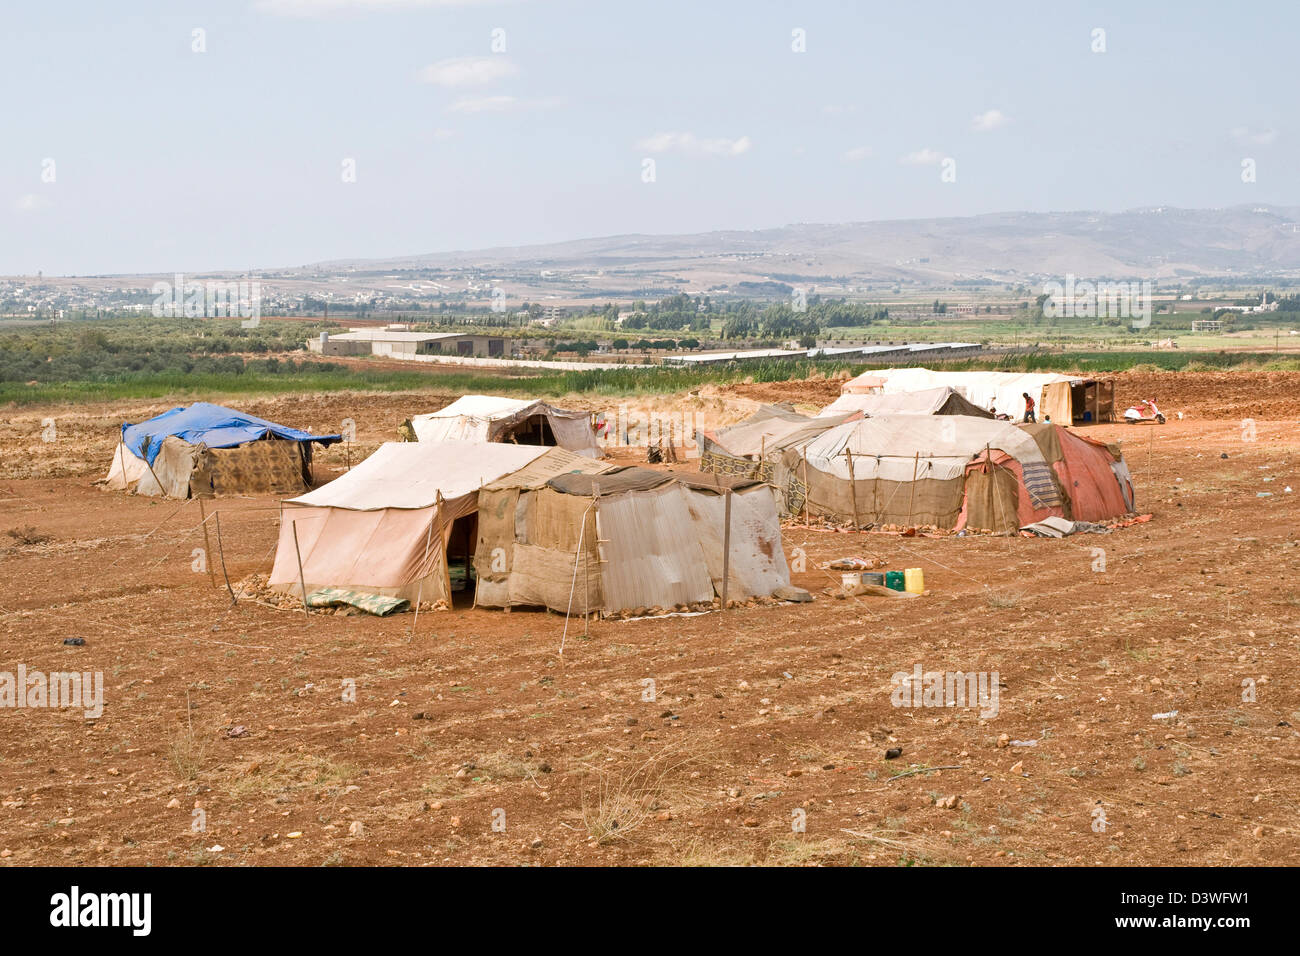 A tent village for Syrian refugees in the northern Lebanese region of Wadi Khaled, just south of the Syria-Lebanon Stock Photo